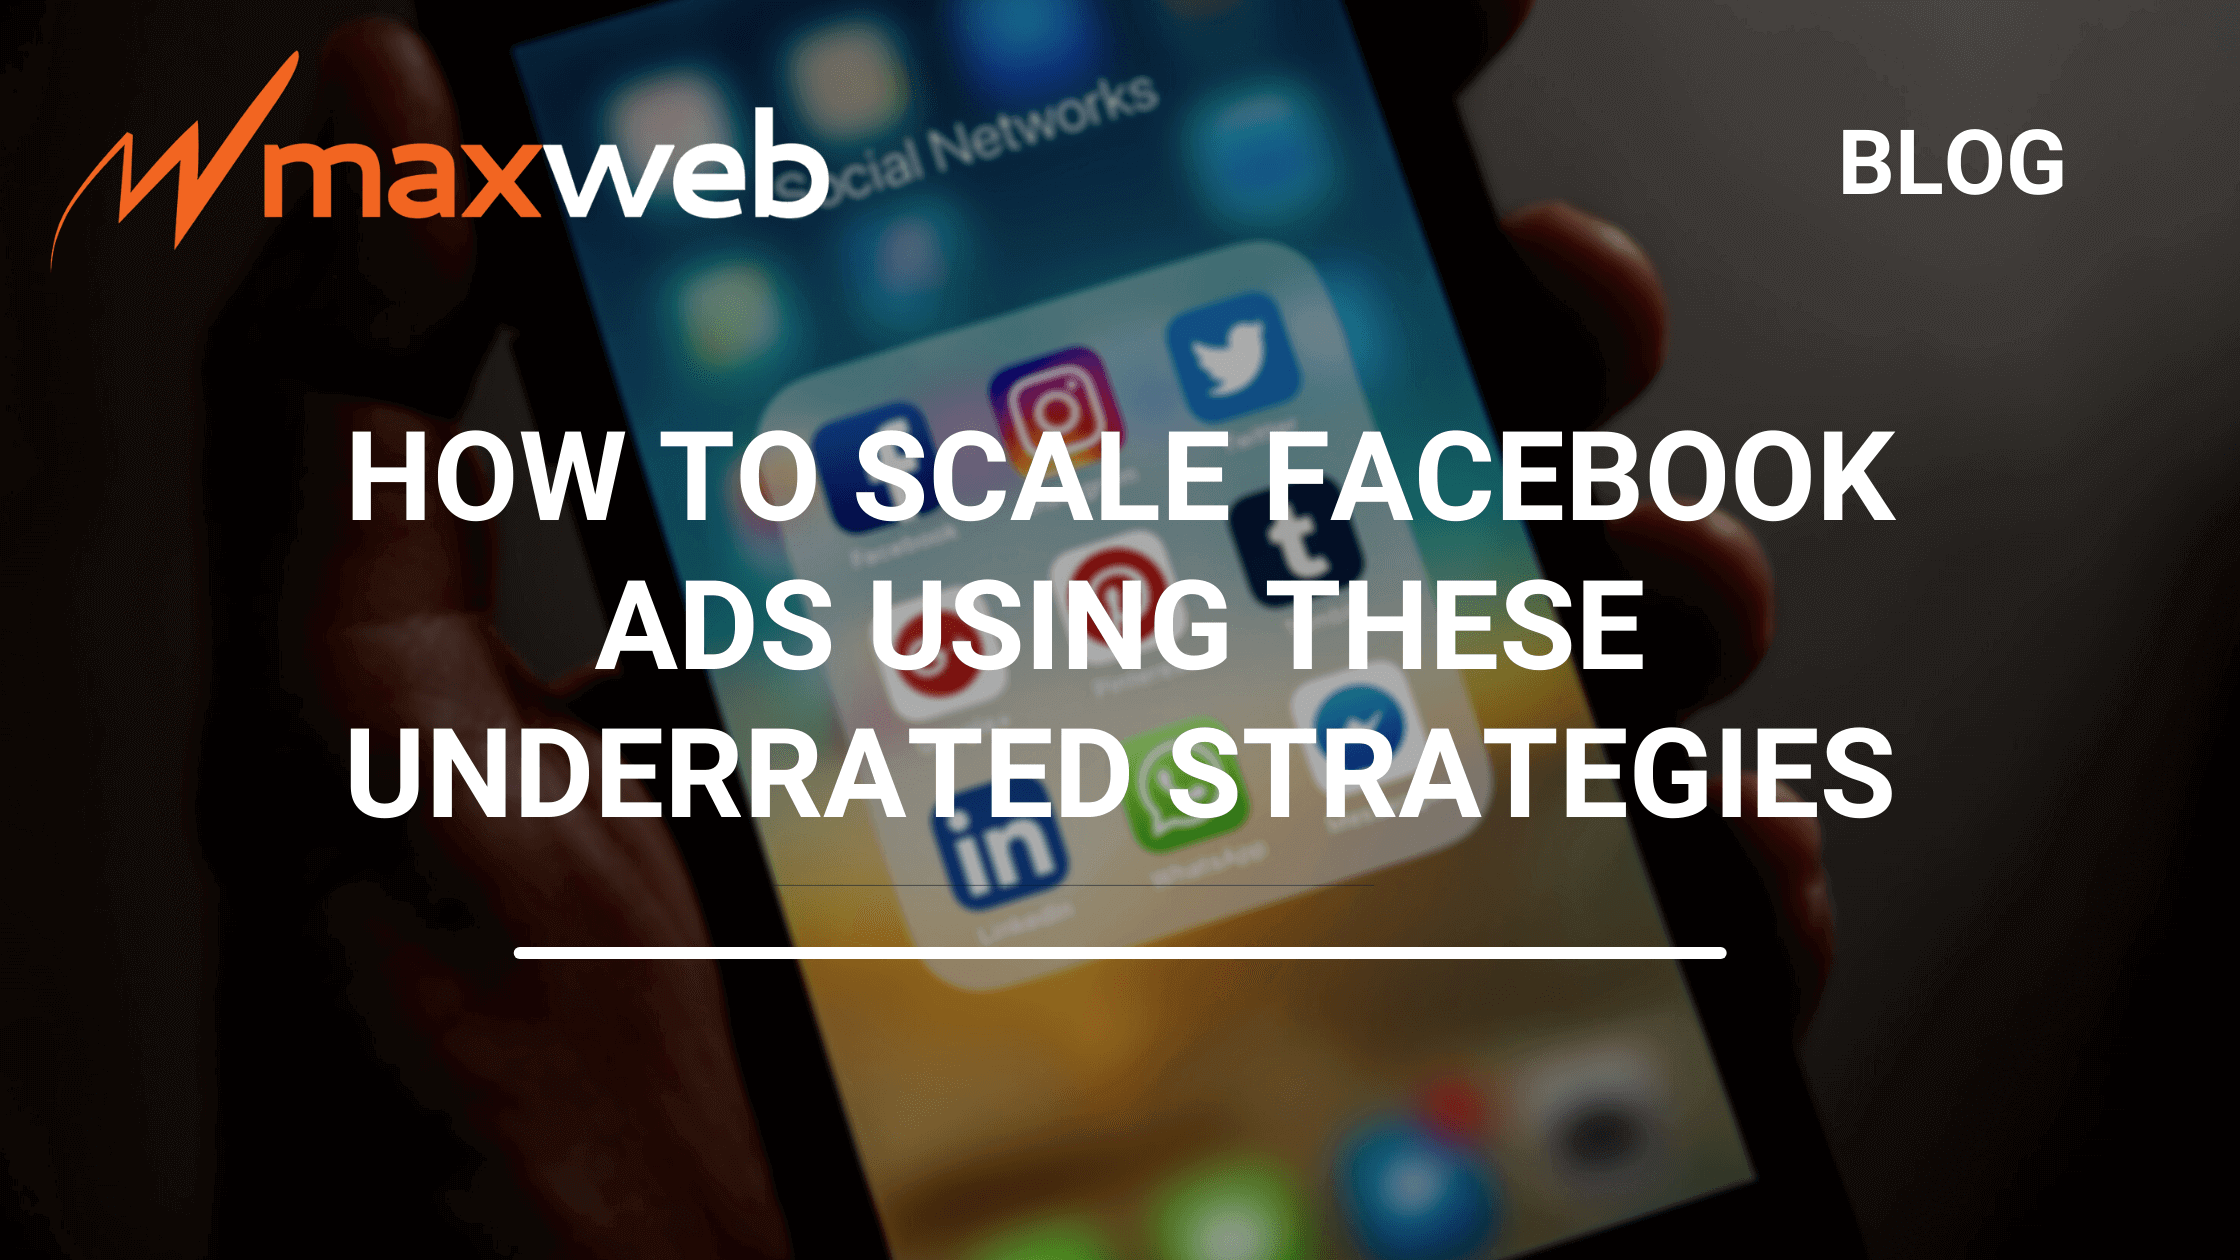 Affiliate Marketing Made Simple: How to Scale Facebook Ads Using These 5 Underrated Strategies